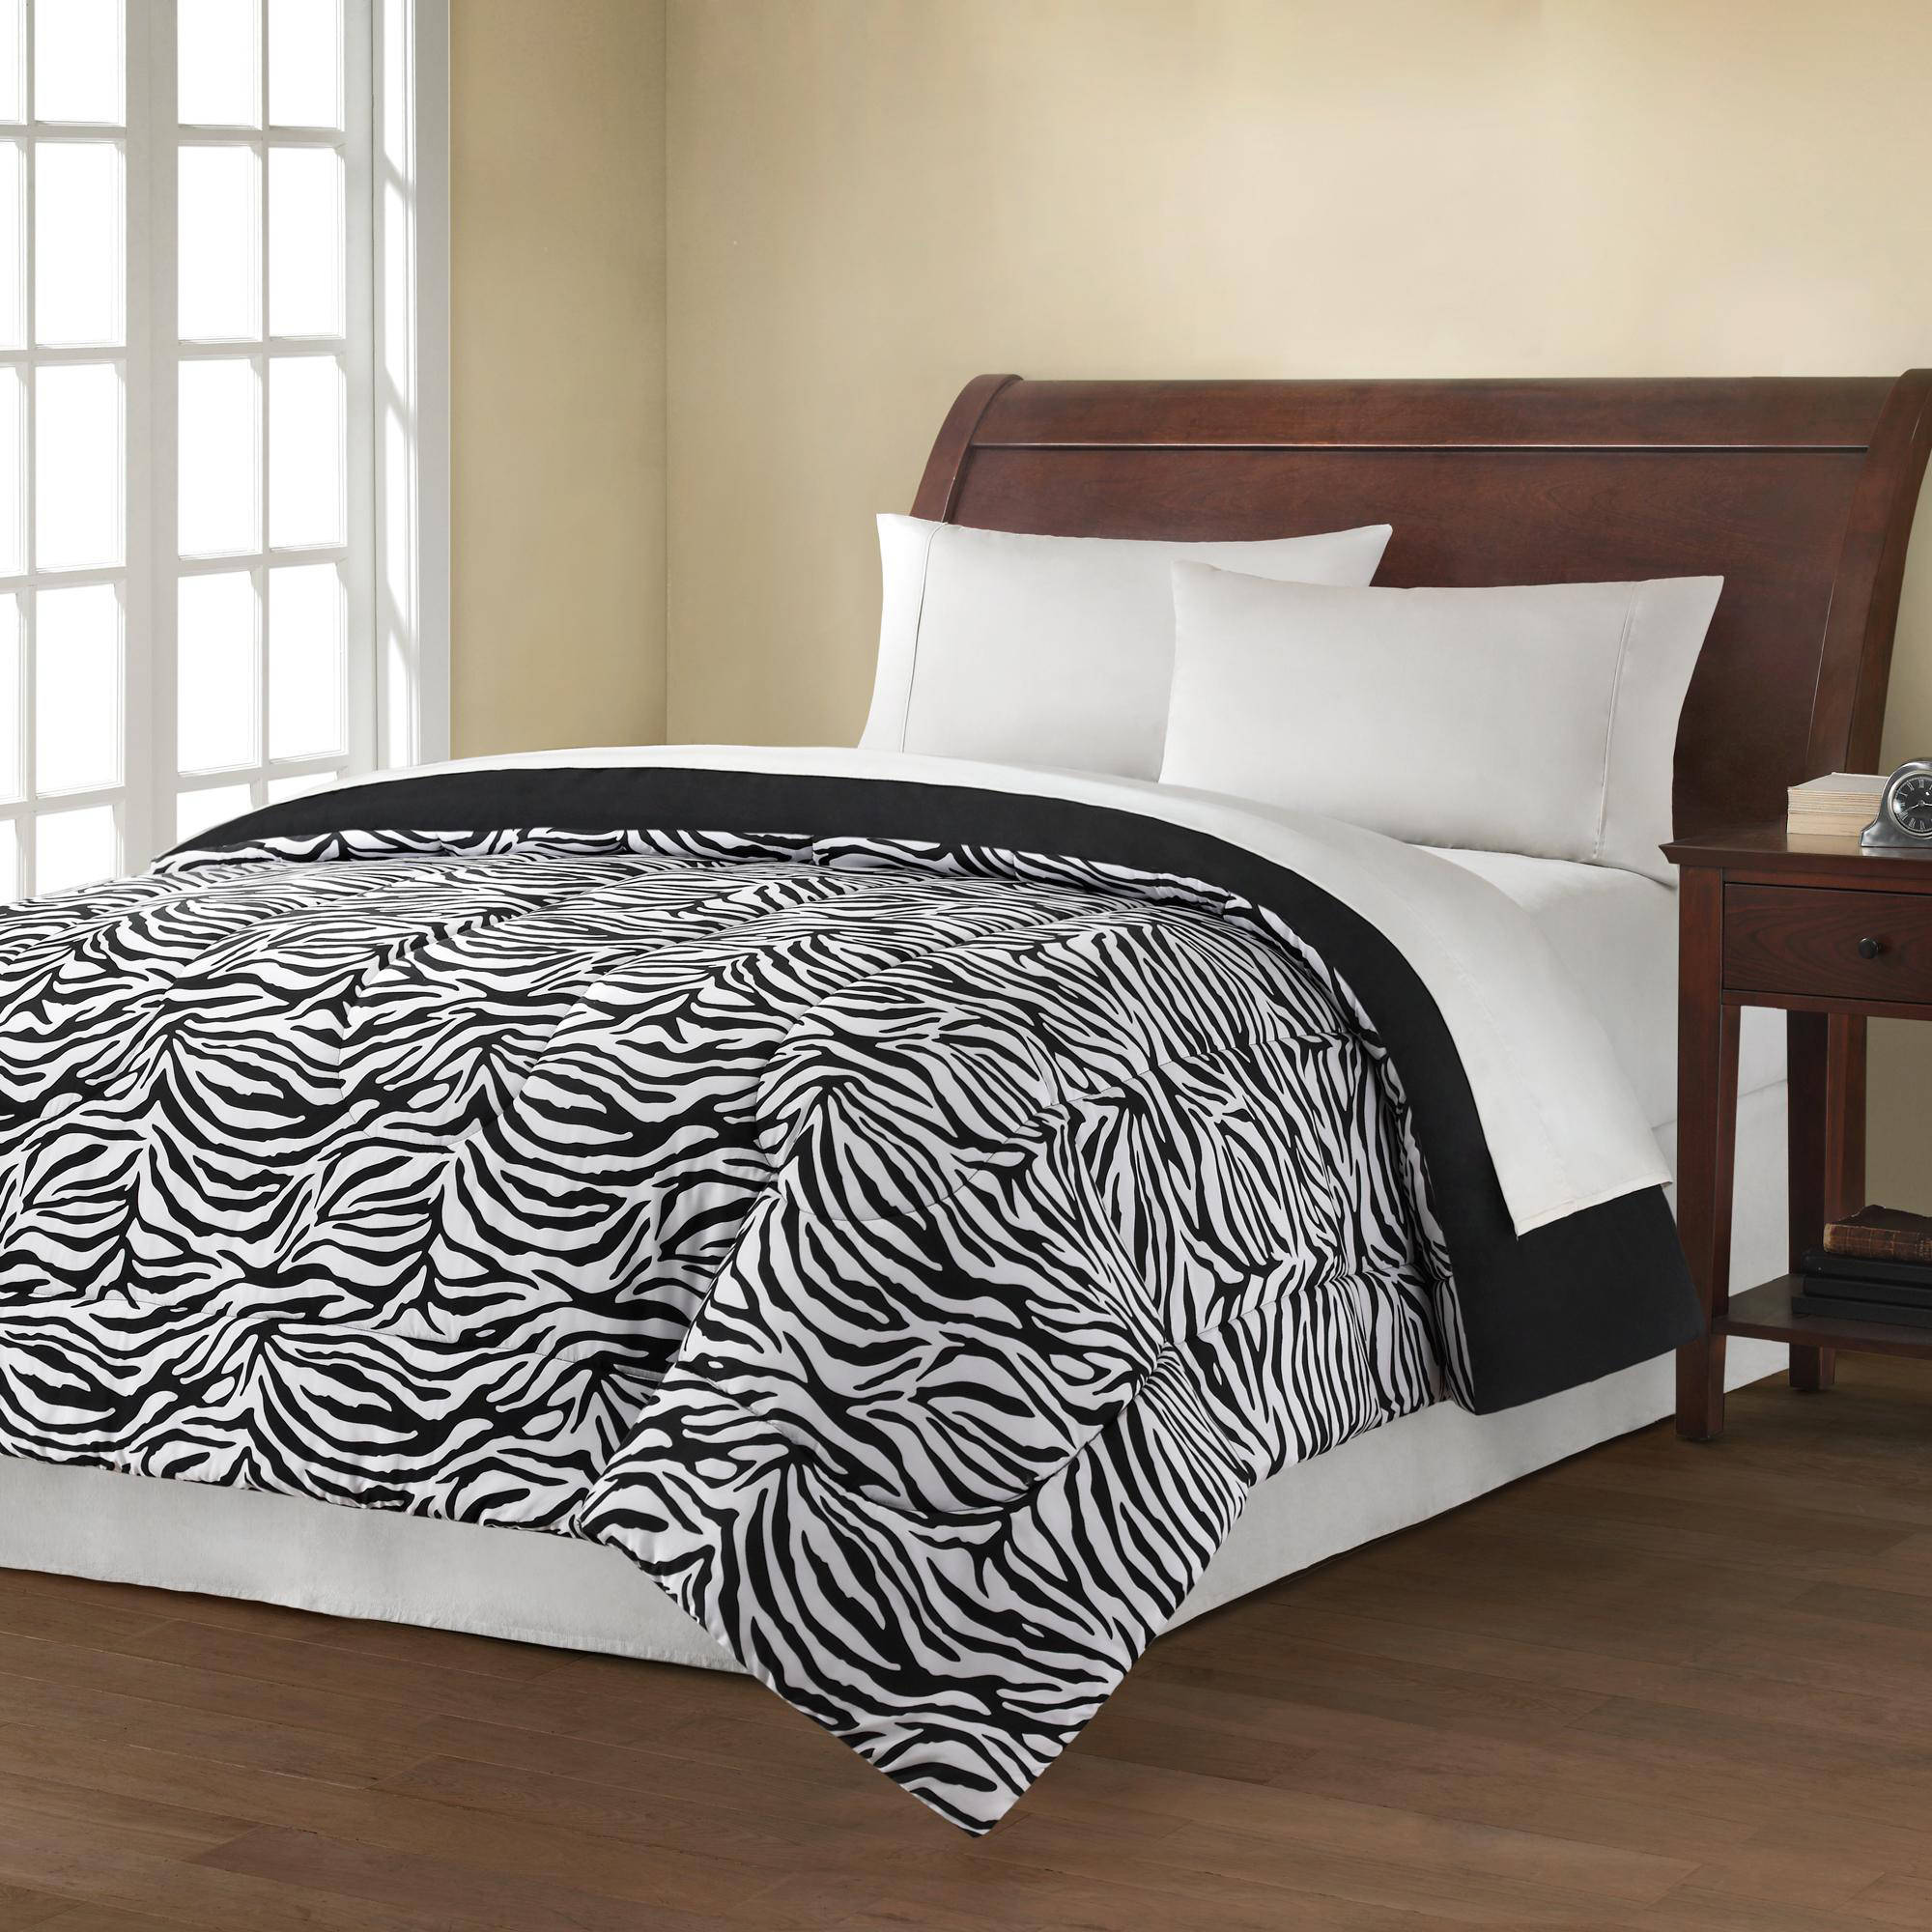 Black and white bedding walmart - Black And White Bedding Walmart 14